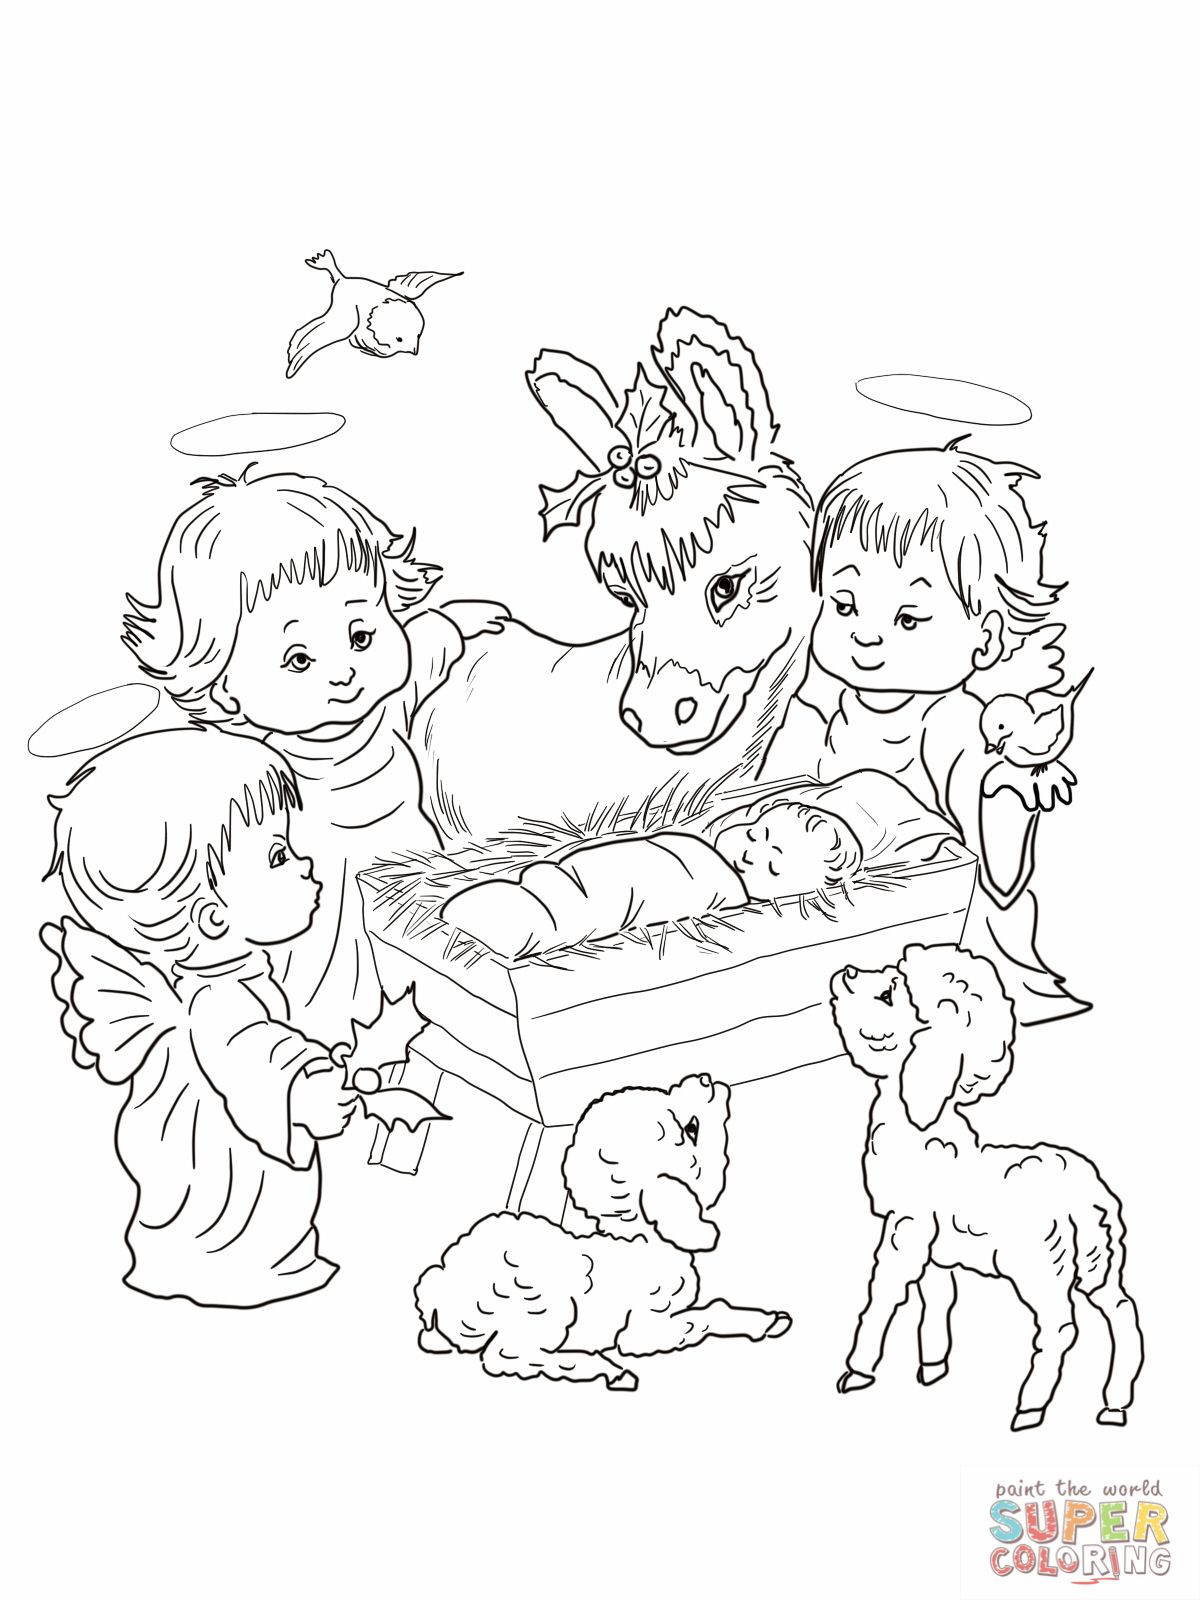 Coloring pictures of nativity scene yahoo search results for Nativity animals coloring pages